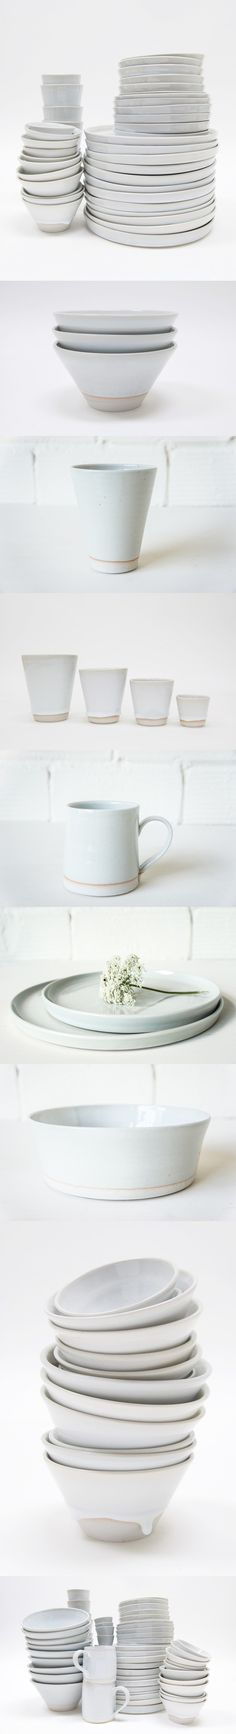 Japanese-Style Tableware Made in LA by Izabella Simmons [http://www.remodelista.com/posts/west-river-field-lab-white-ceramics-by-nobuhito-nishigawara-in-los-angeles]